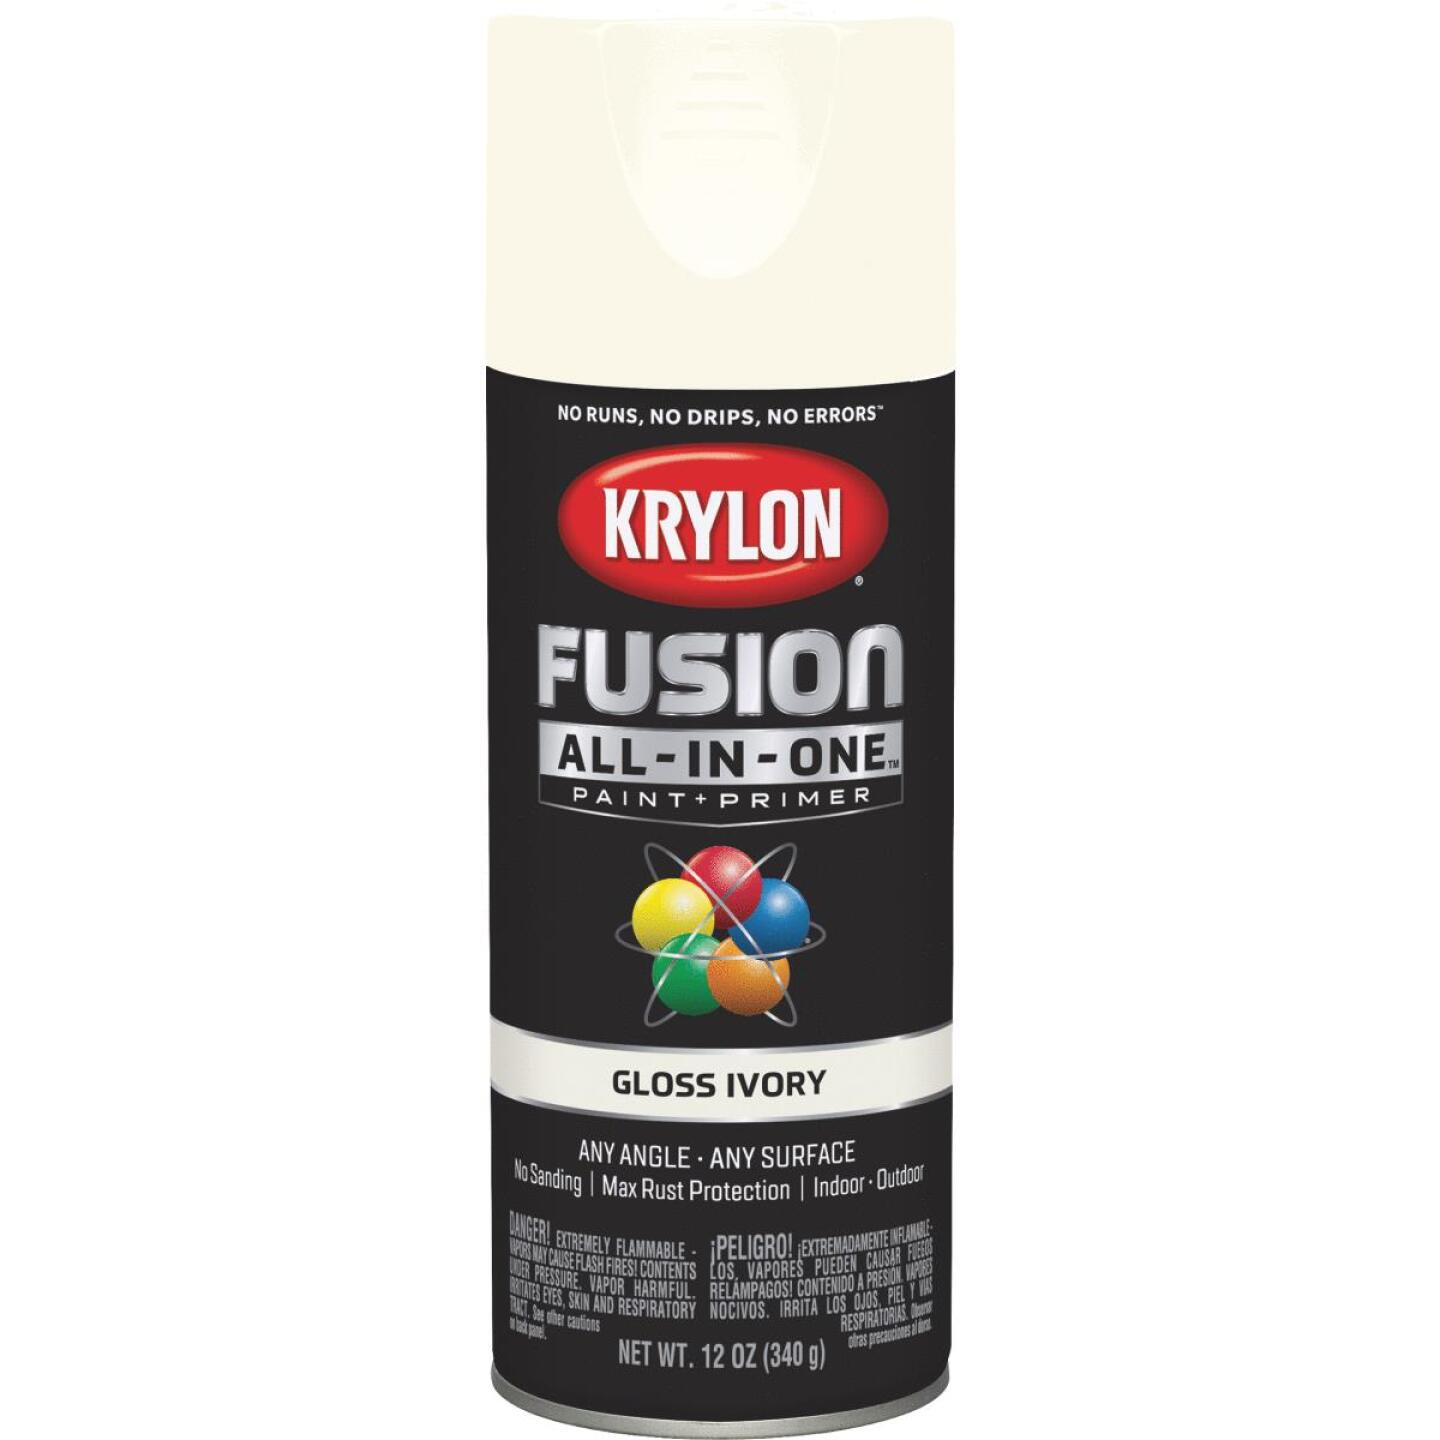 Krylon Fusion All-In-One Gloss Spray Paint & Primer, Ivory Image 1